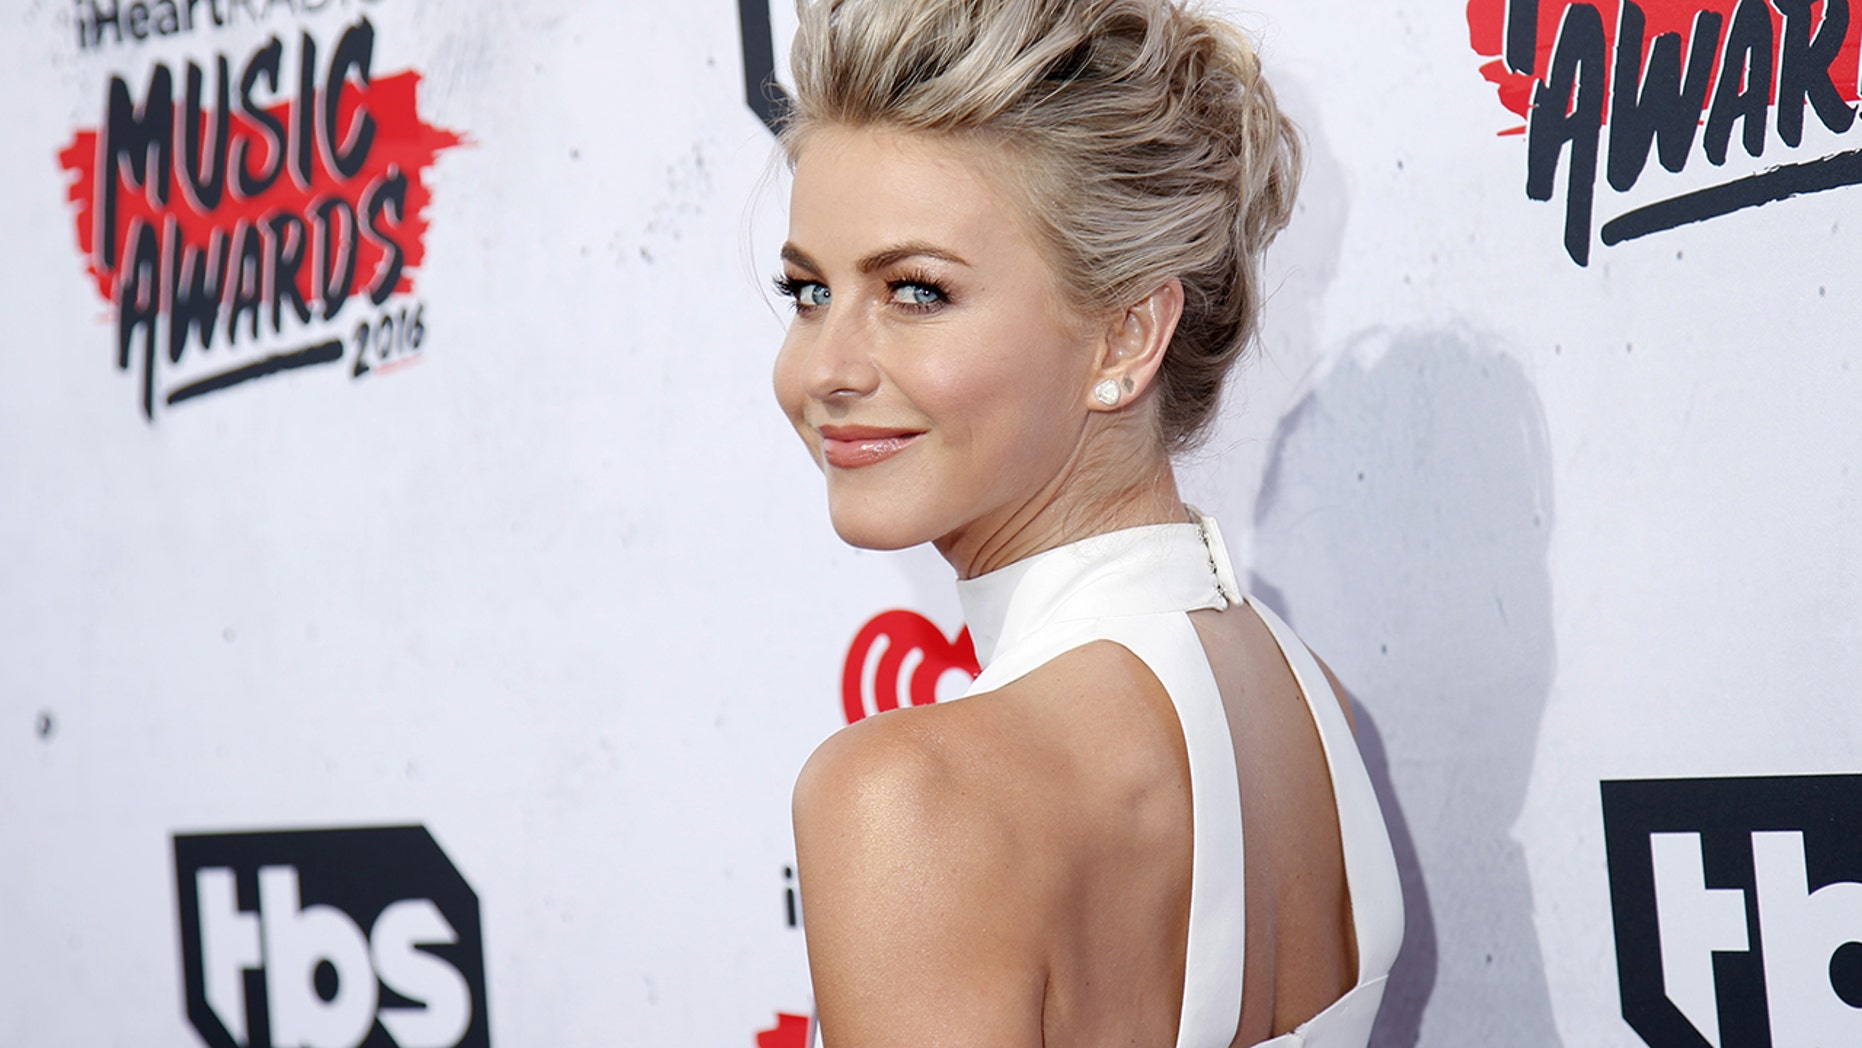 Dancer and actress Julianne Hough poses at the 2016 iHeartRadio Music Awards in Inglewood, California, April 3, 2016.